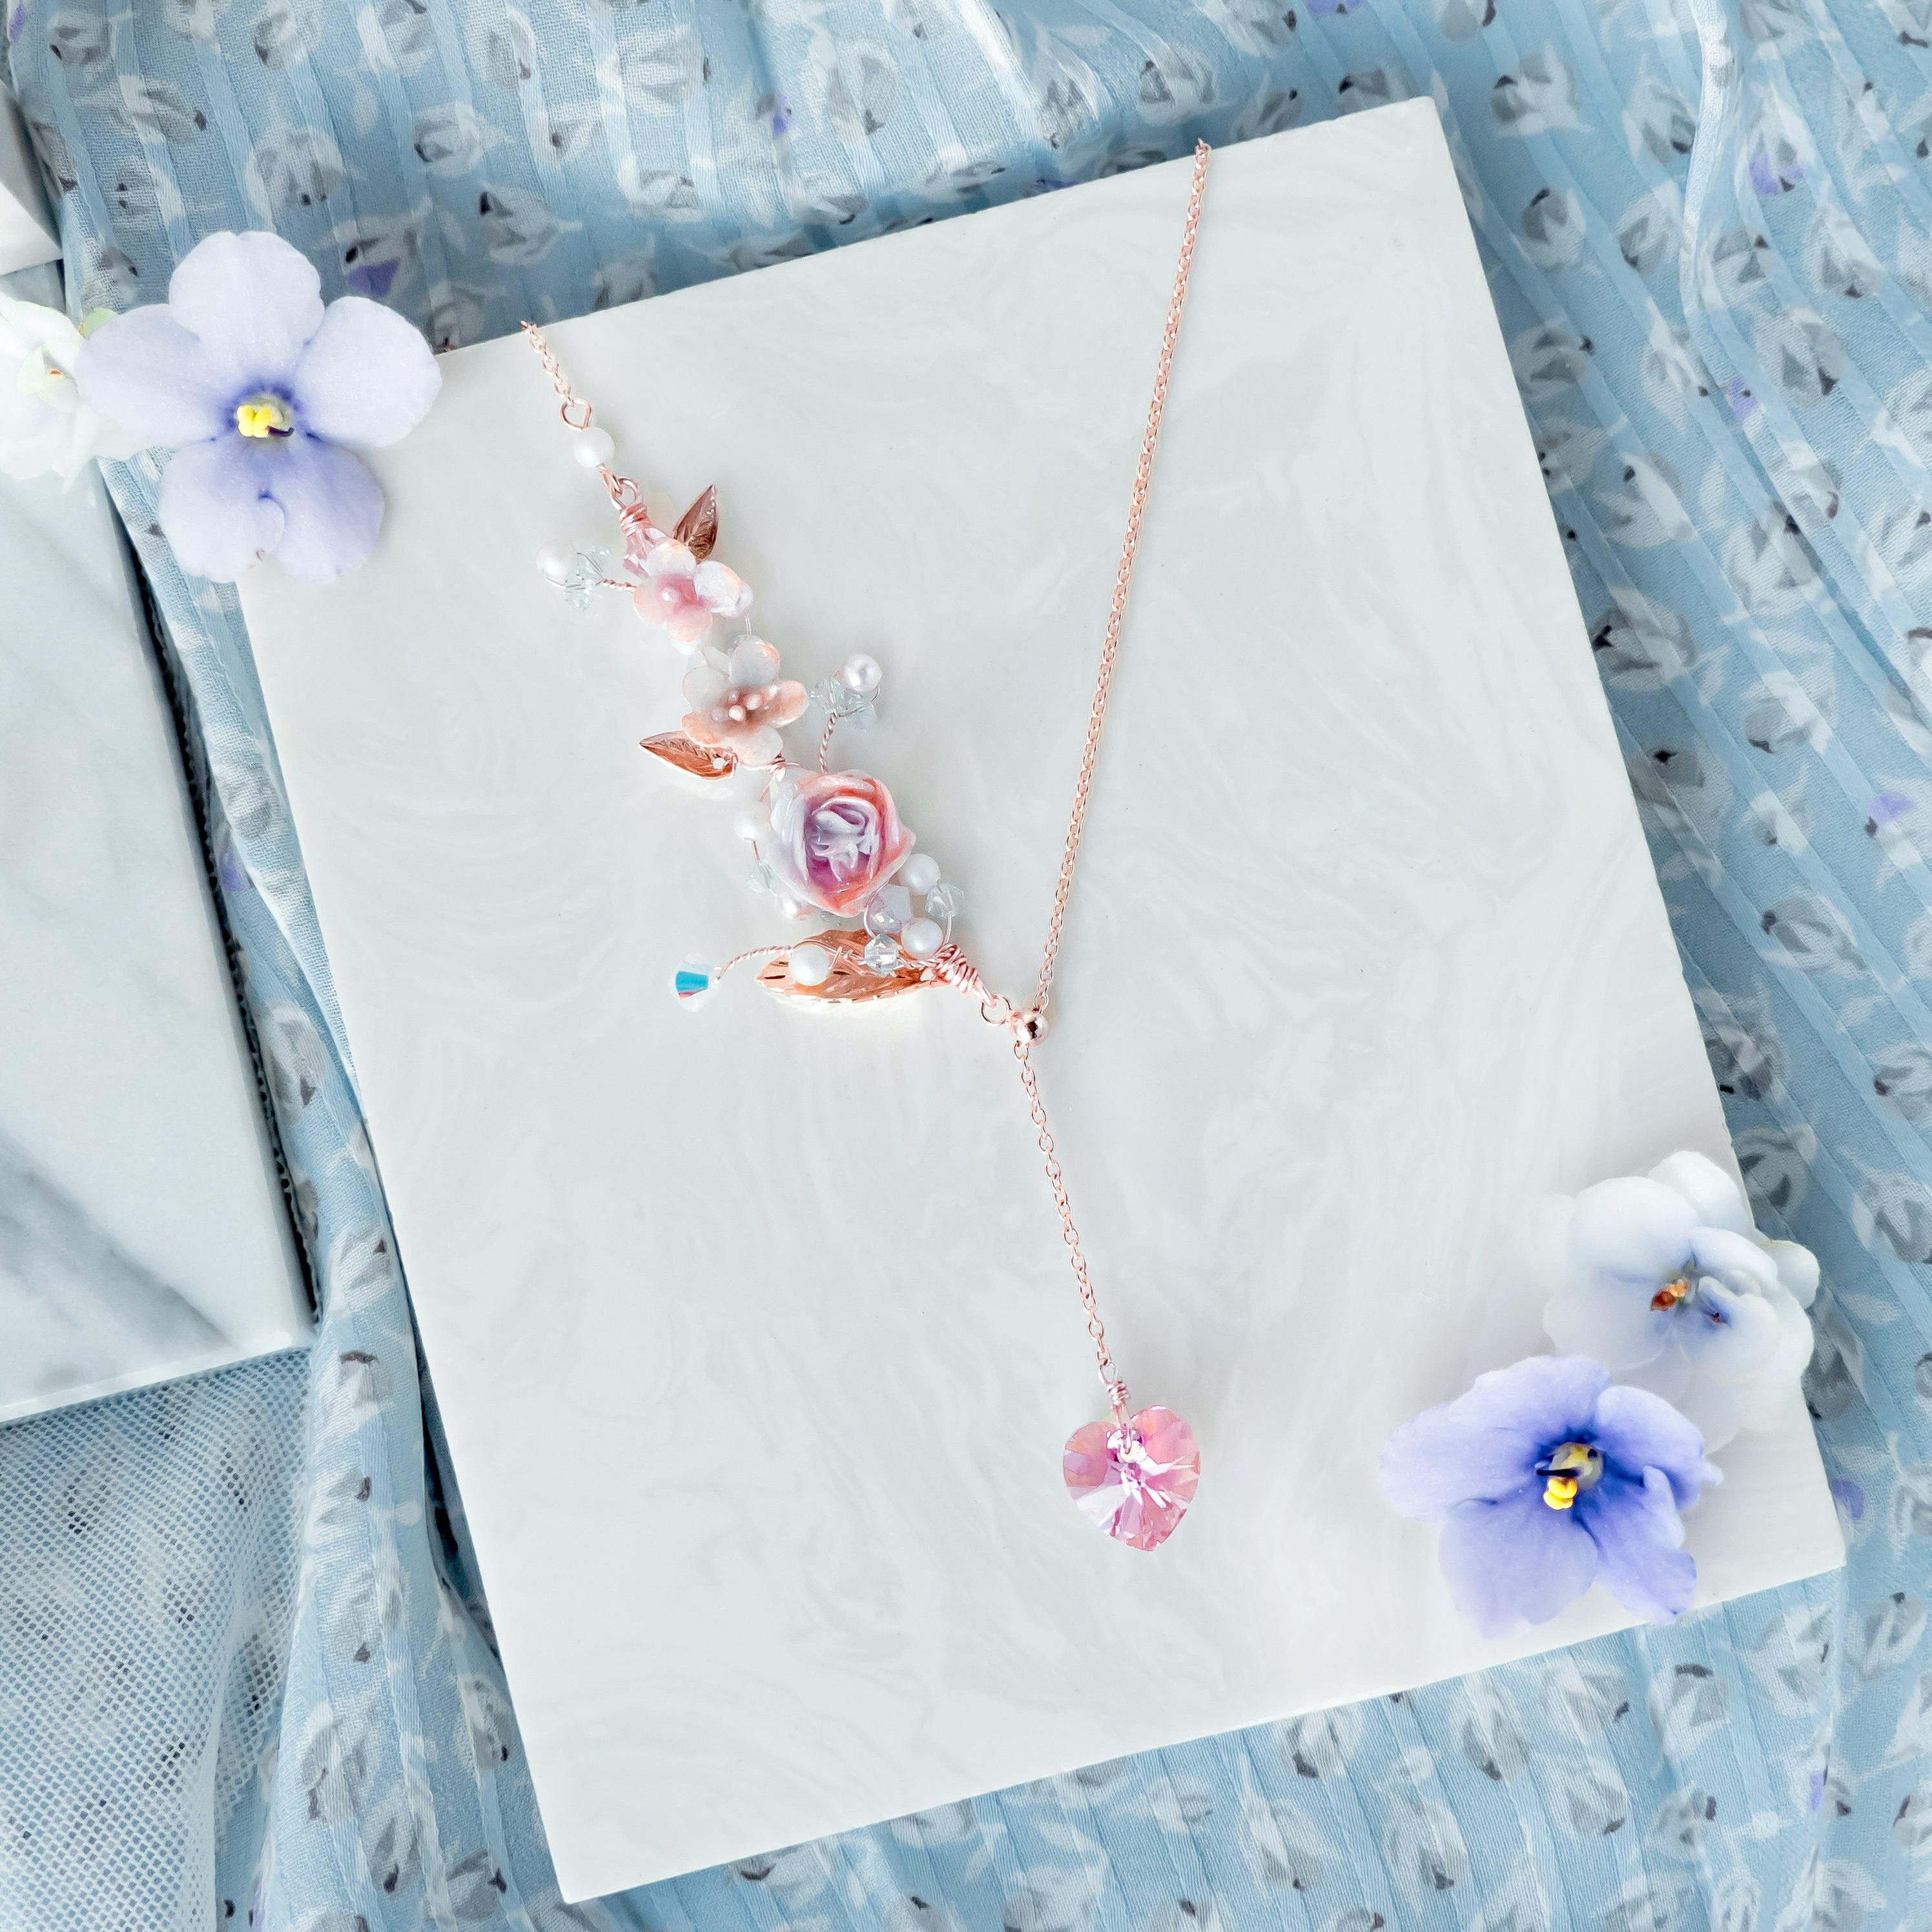 ZODIAC Aquarius Garden Rose Necklace